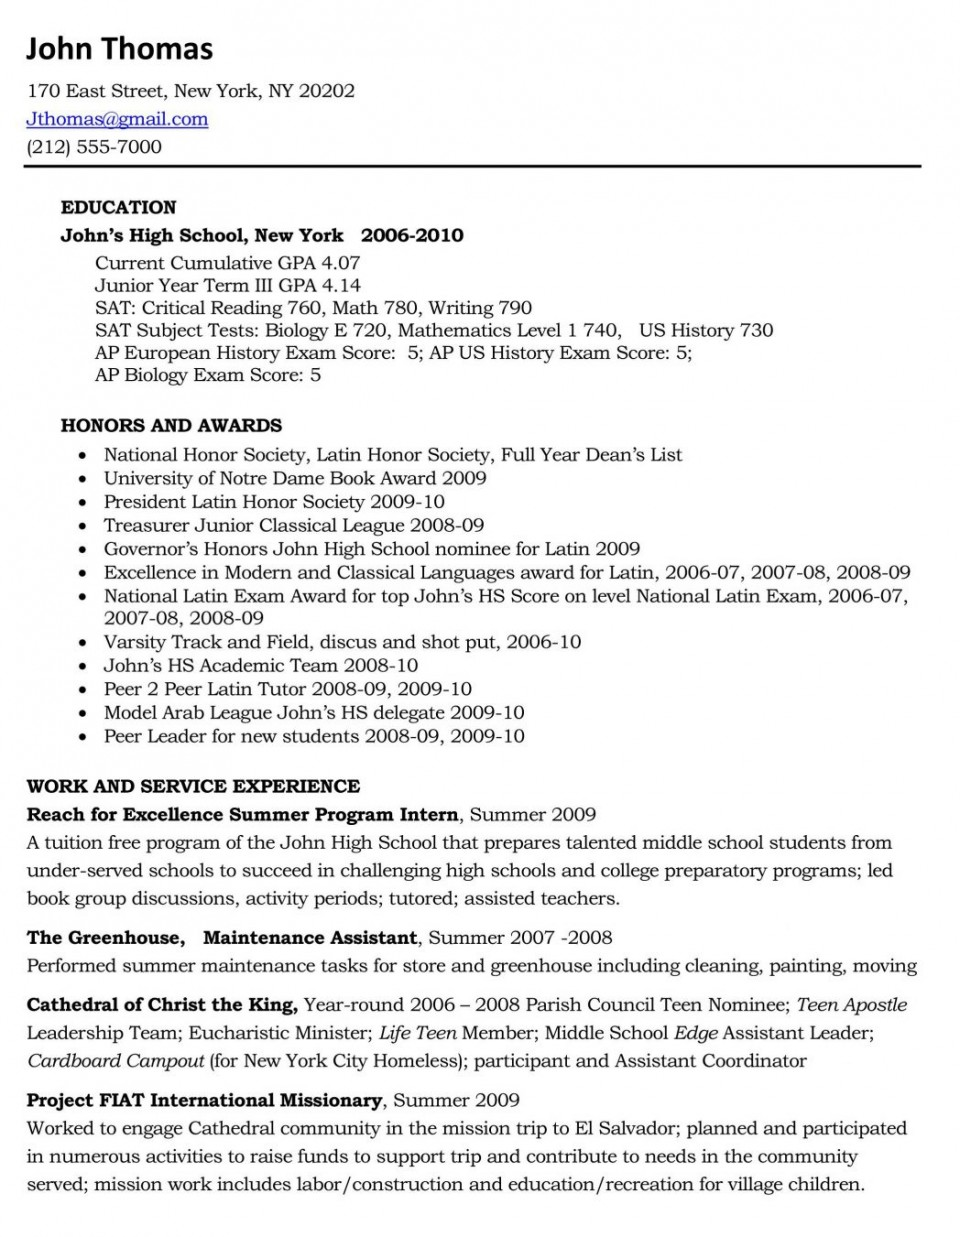 008 Essay On Texting Resume Jpg Persuasive Should Cellphones Allowed In S Cell Phones Not School Reasons Why Argumentative Banned Mobile 1048x1351 Fantastic Be Schools Pdf 960